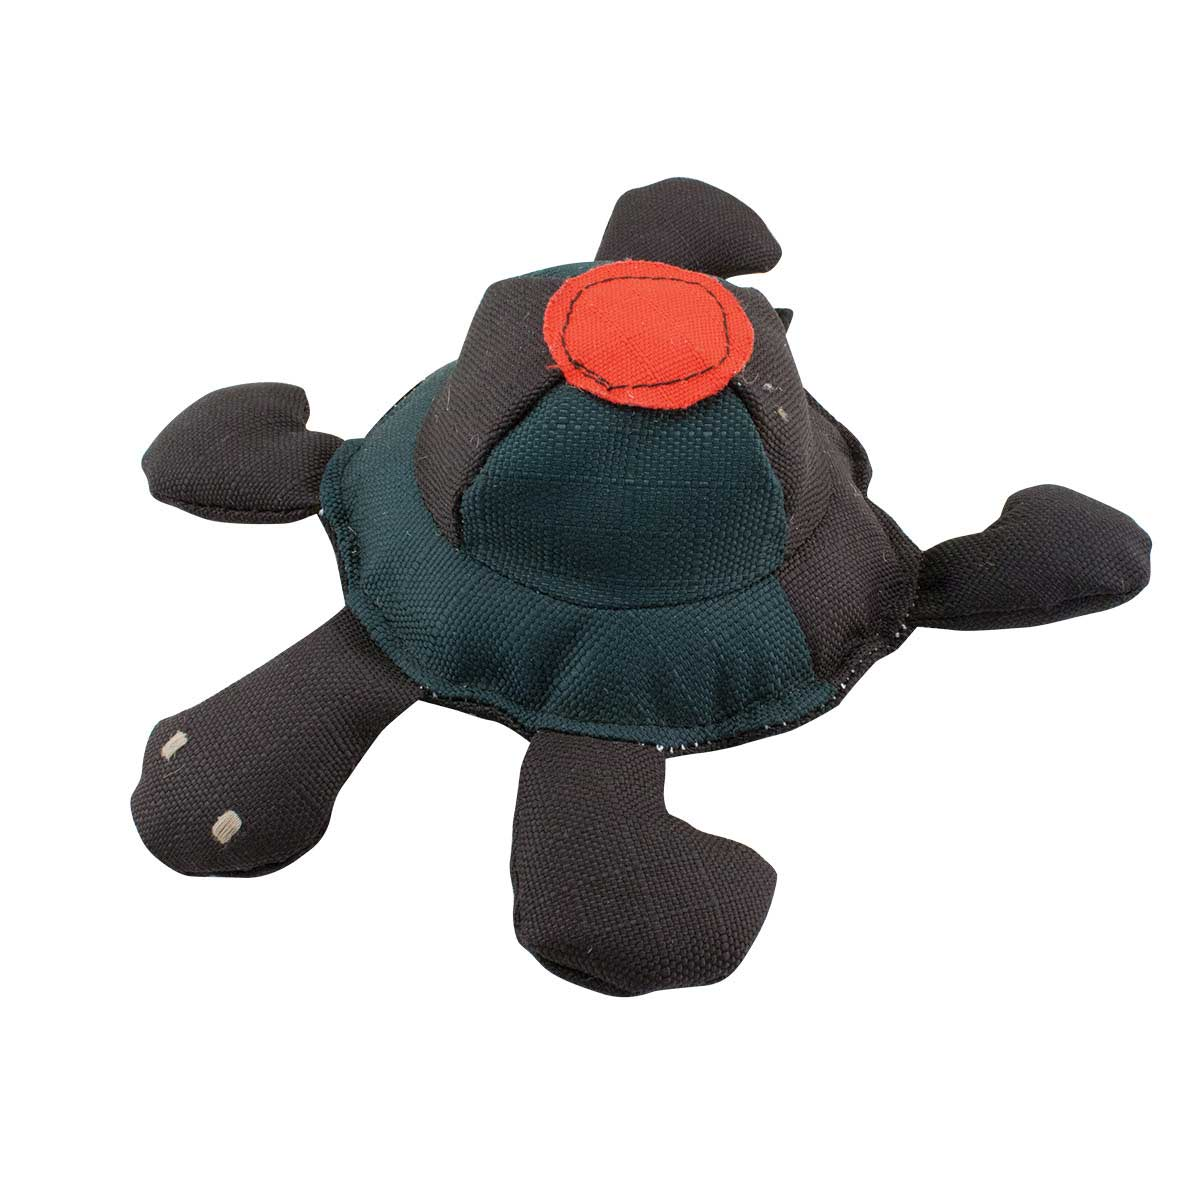 Dawgeee Toy Tough Turtle With Ripstop Fabric for Dogs - 9 inches